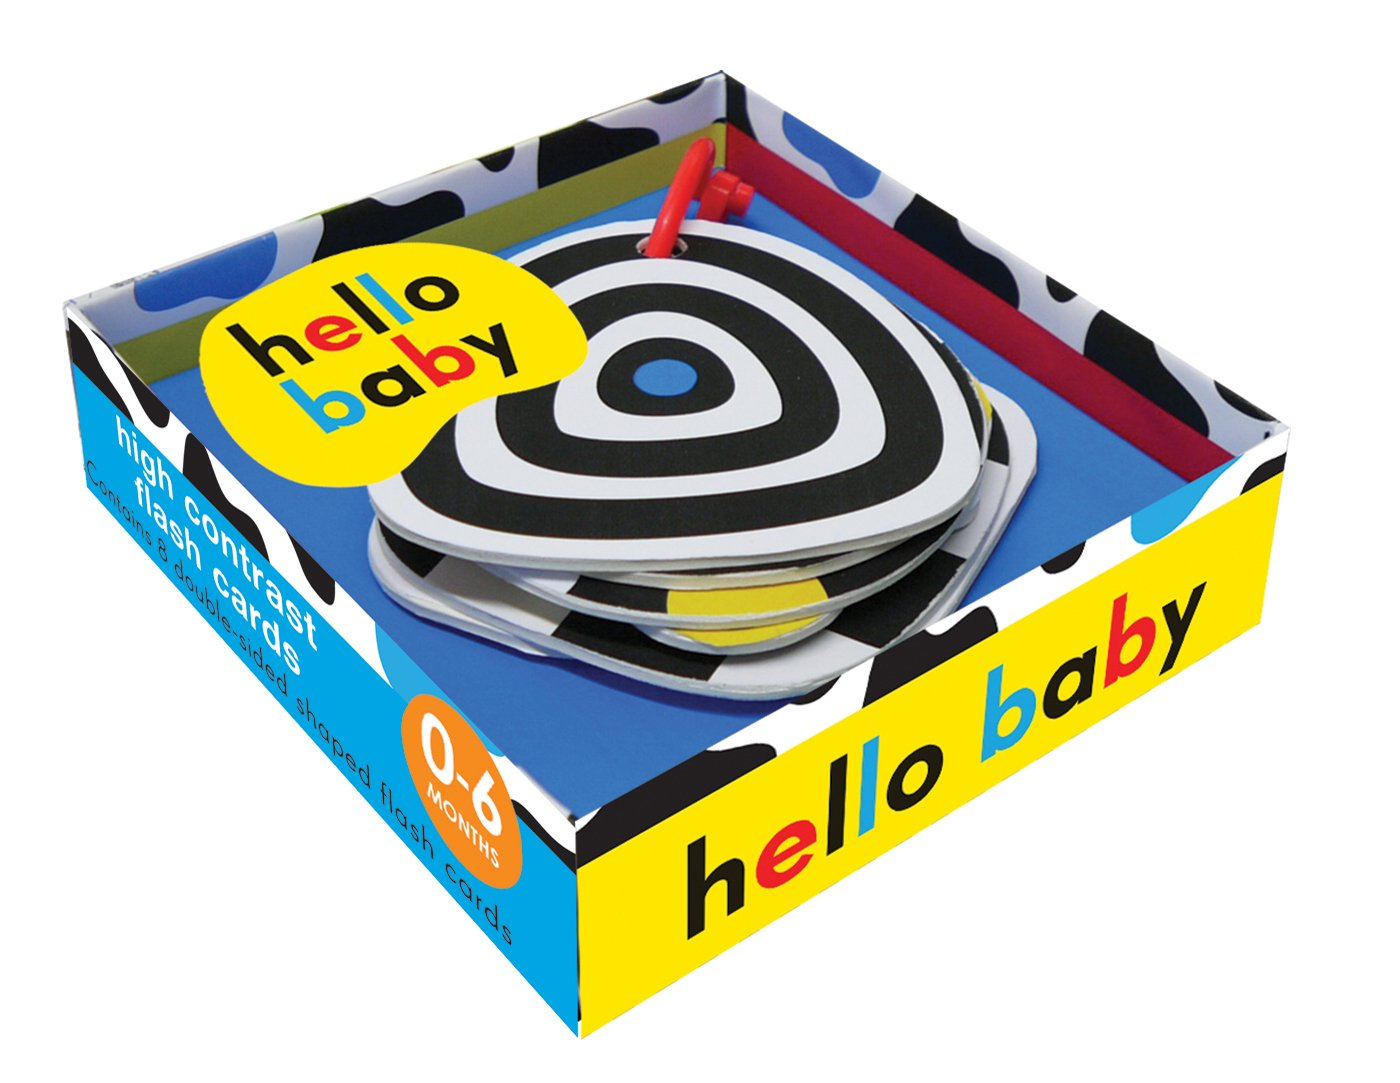 Hello Baby Flash Roger Priddy product image